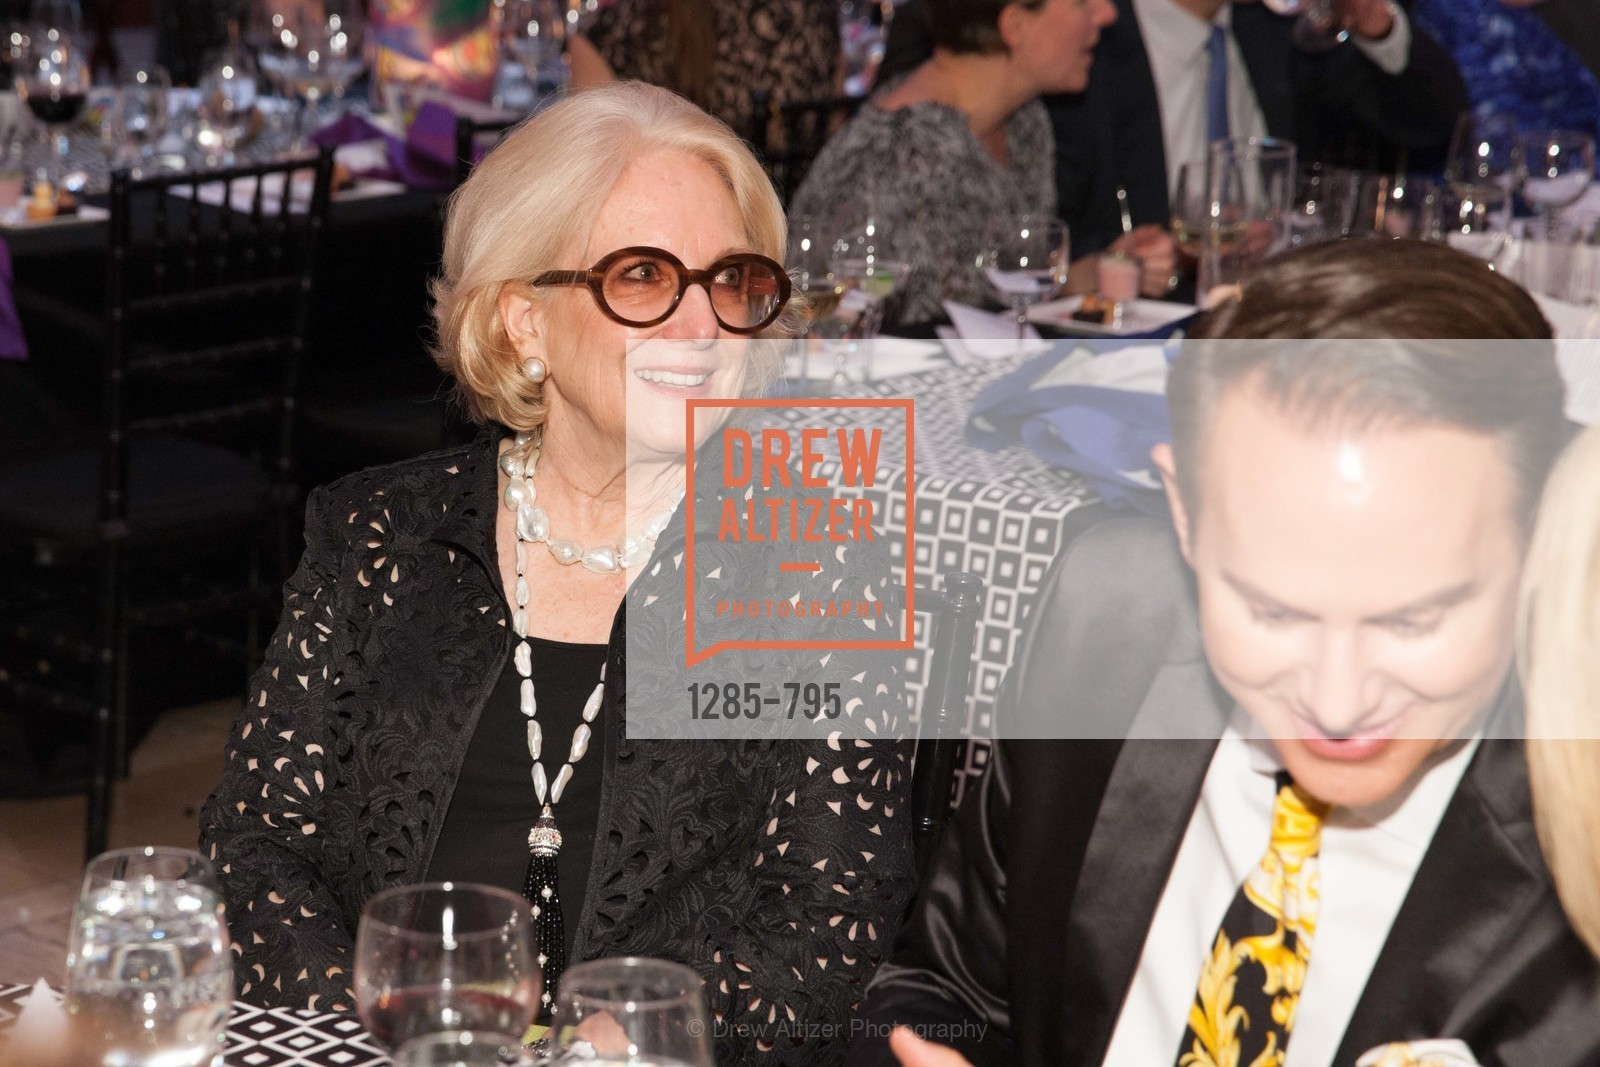 Cynthia Molstad, COMPASS FAMILY SERVICES Annual Spring Benefit:  Every Family Needs A Home, US, April 23rd, 2015,Drew Altizer, Drew Altizer Photography, full-service agency, private events, San Francisco photographer, photographer california